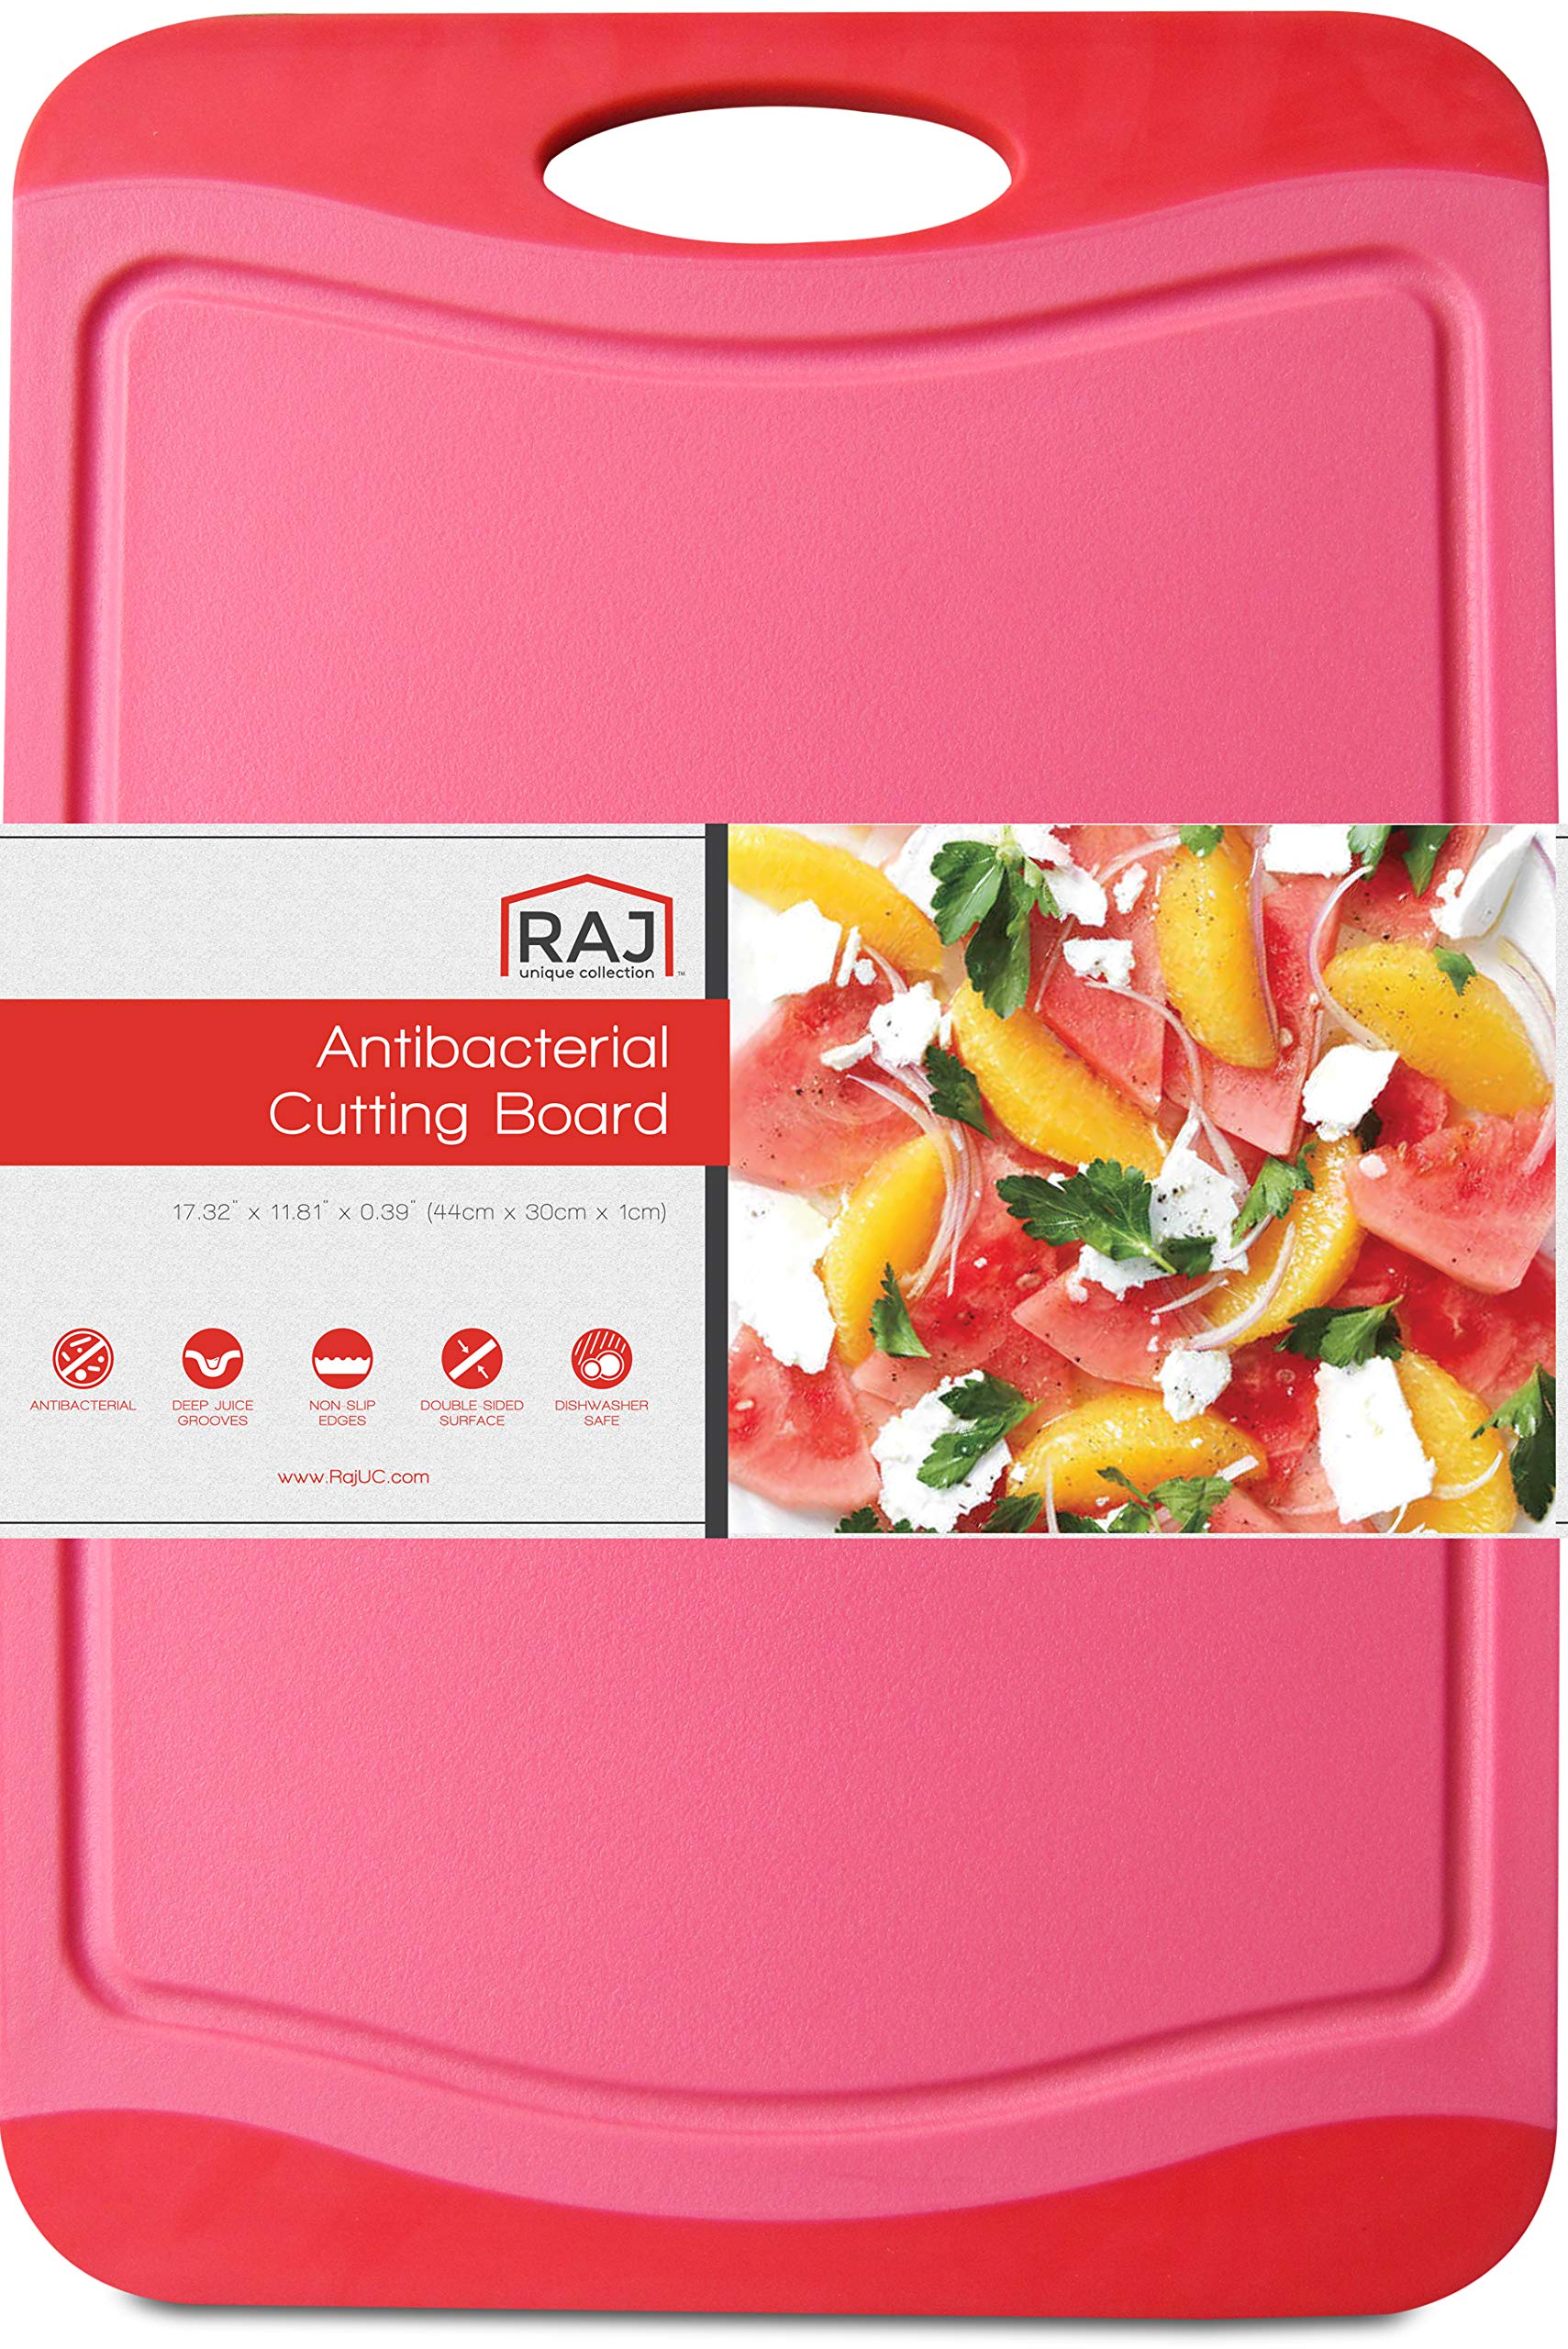 """Raj Plastic Cutting Board Reversible Cutting board, Dishwasher Safe, Chopping Boards, Juice Groove, Large Handle, Non-Slip, BPA Free (Extra Large (17.4"""" x 11.81""""), Crimson Red)"""